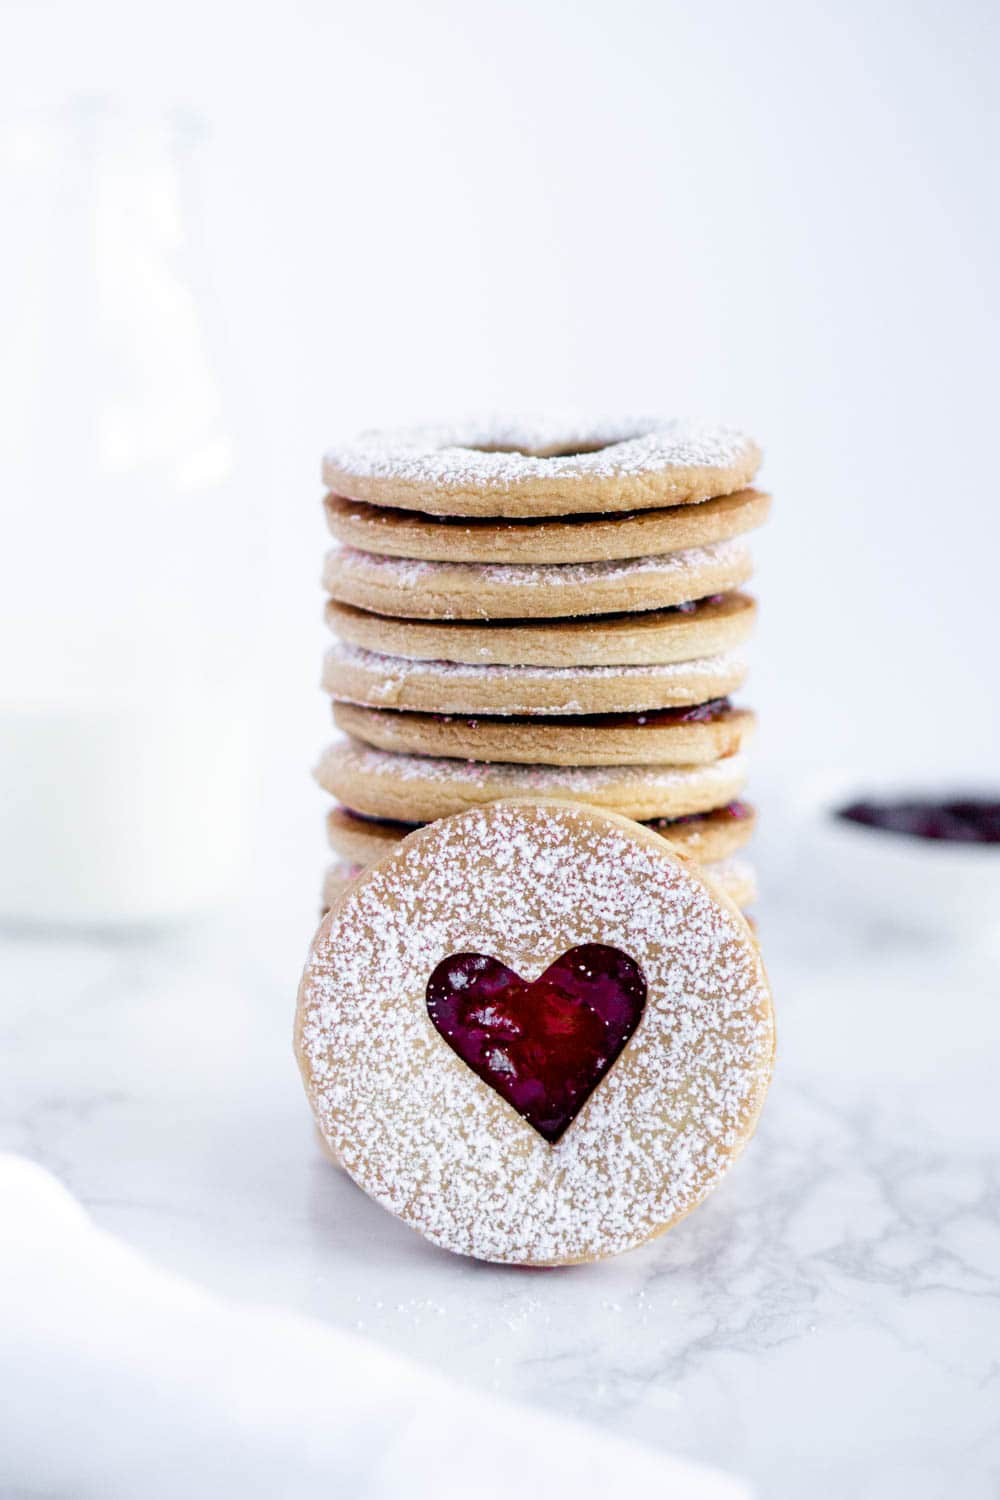 A stack of jam cookies with one jam cookie in front of the stack, with milk in the background